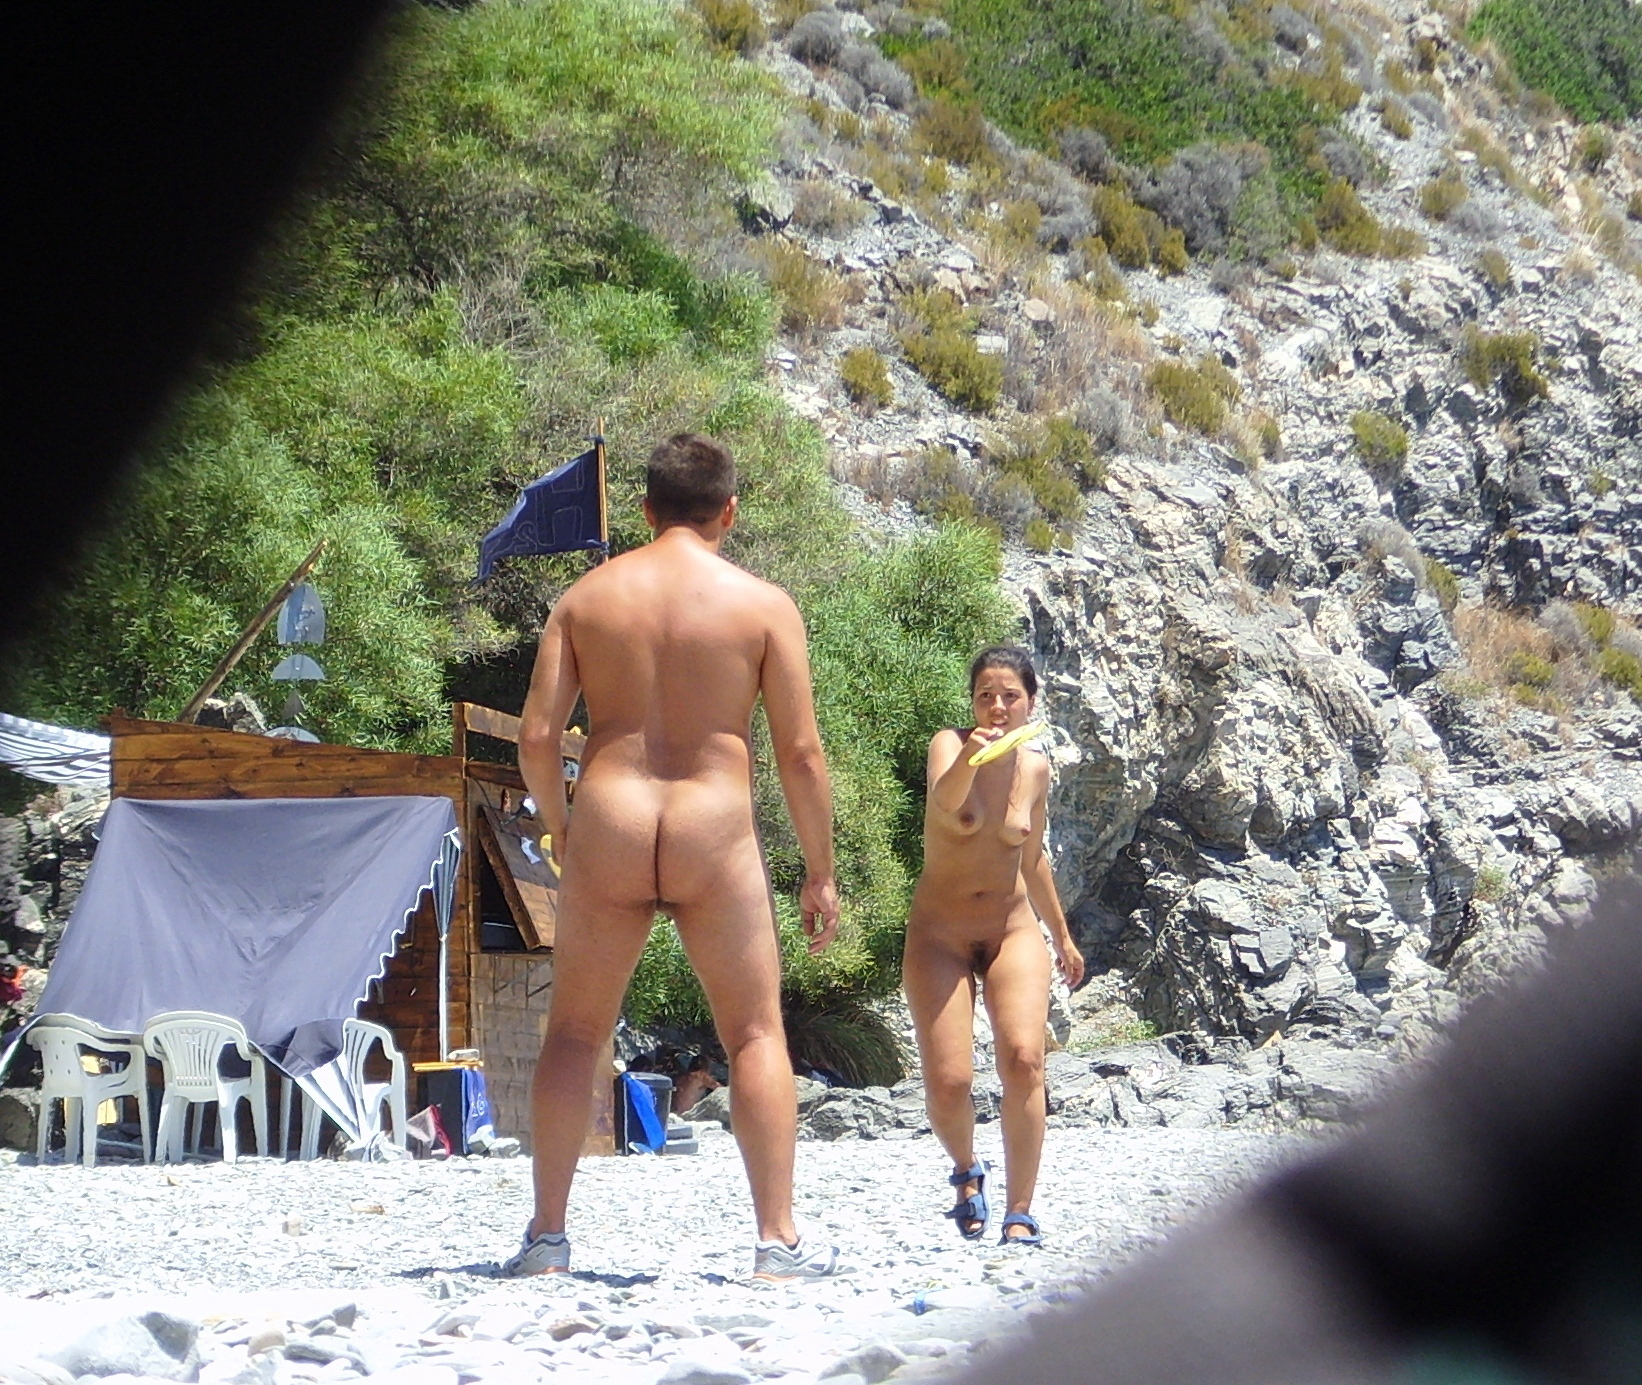 https://voyeurpapa.com/wp-content/uploads/2016/12/Nudists-family-nude-beach-9.jpg